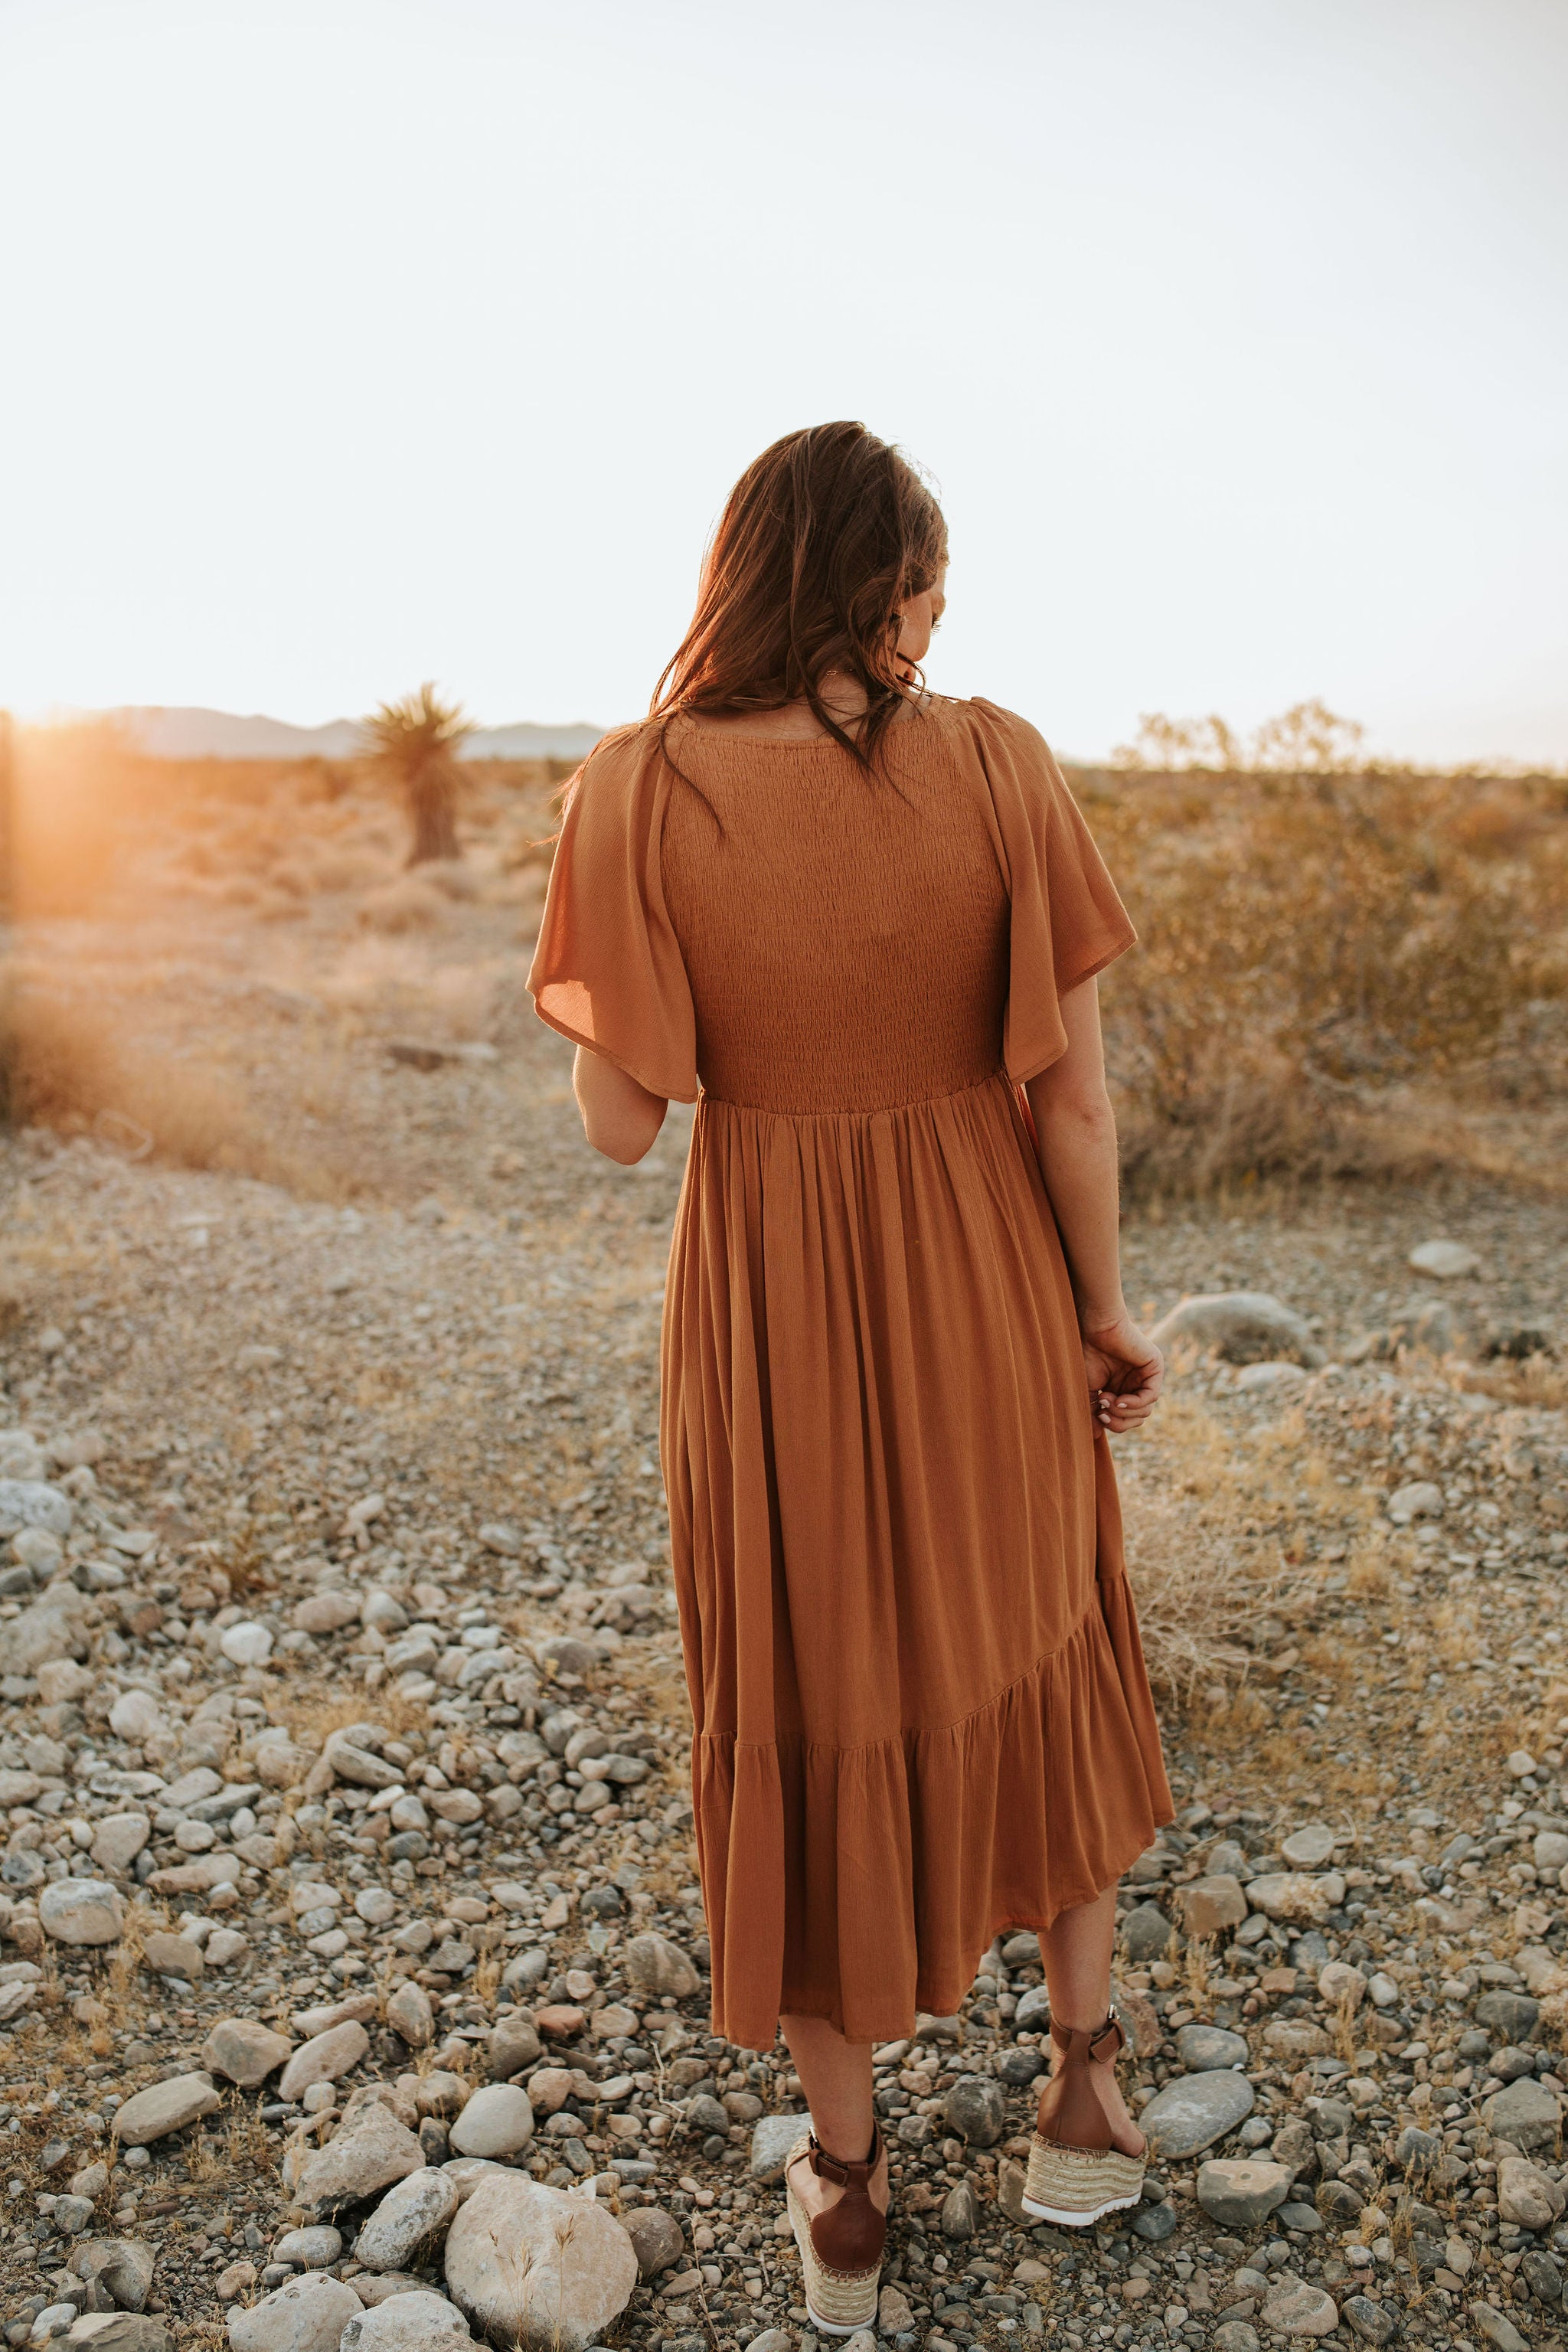 CATCH THE BREEZE MIDI DRESS IN RUSTIC GOLD